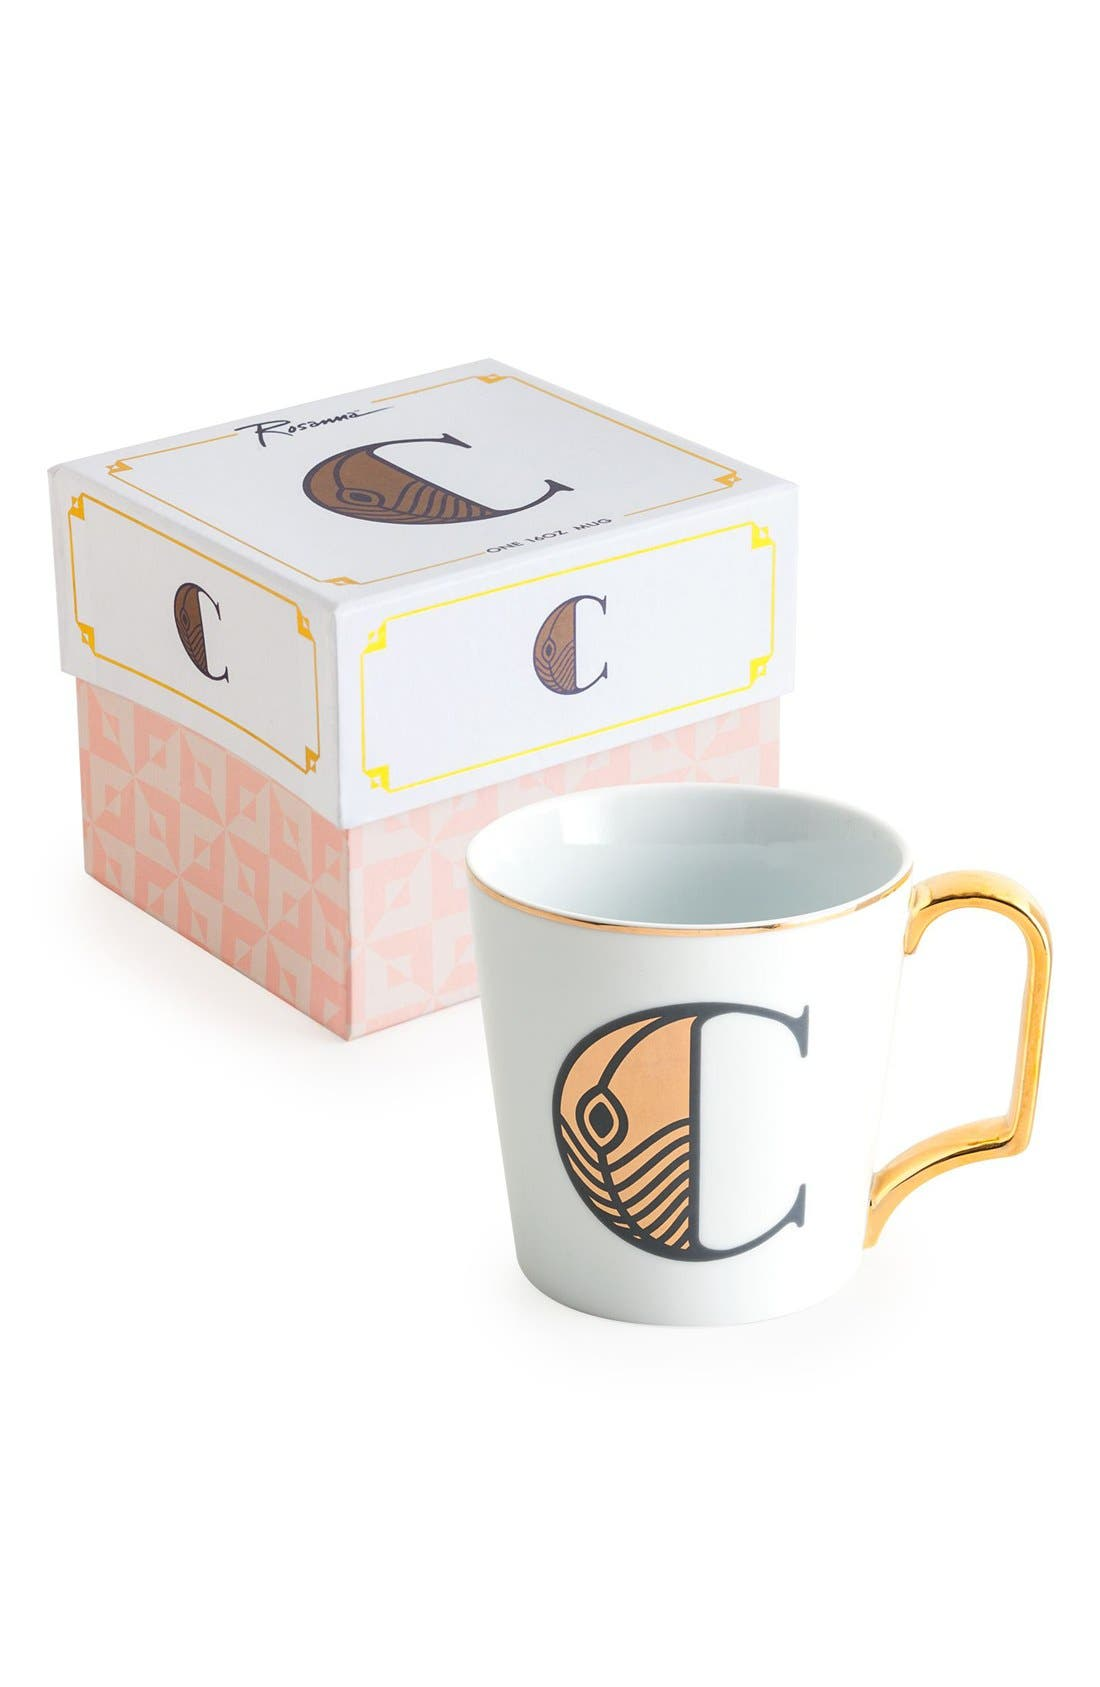 Monogram Porcelain Coffee Mug,                             Main thumbnail 3, color,